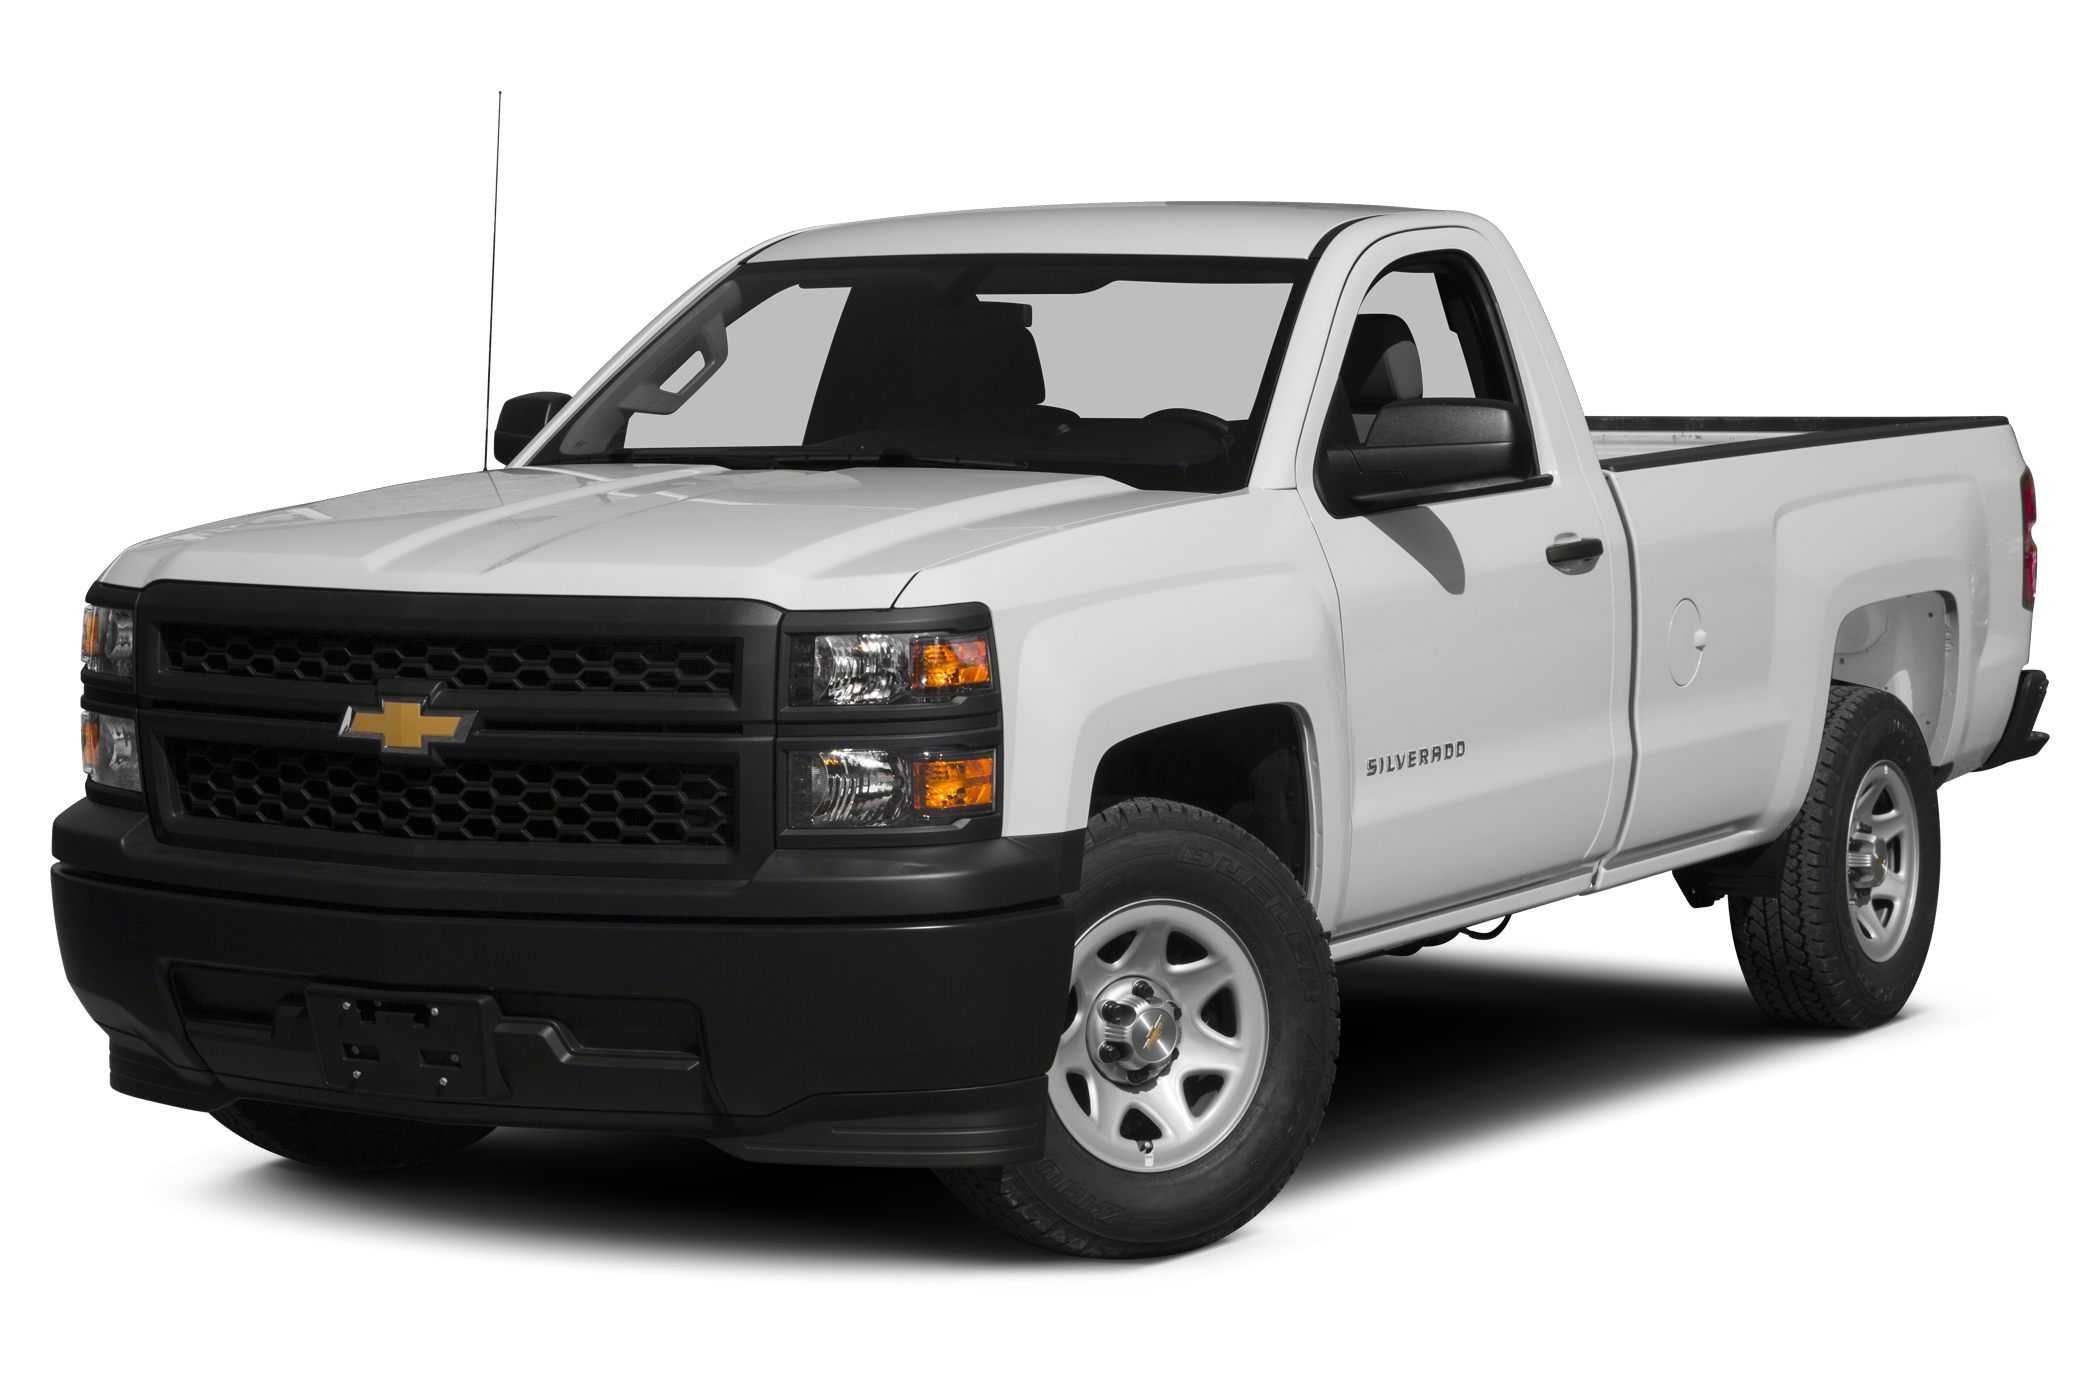 2015 Chevrolet Silverado 1500 1LT Regular Cab Pickup for sale in Littleton for $40,040 with 5 miles.